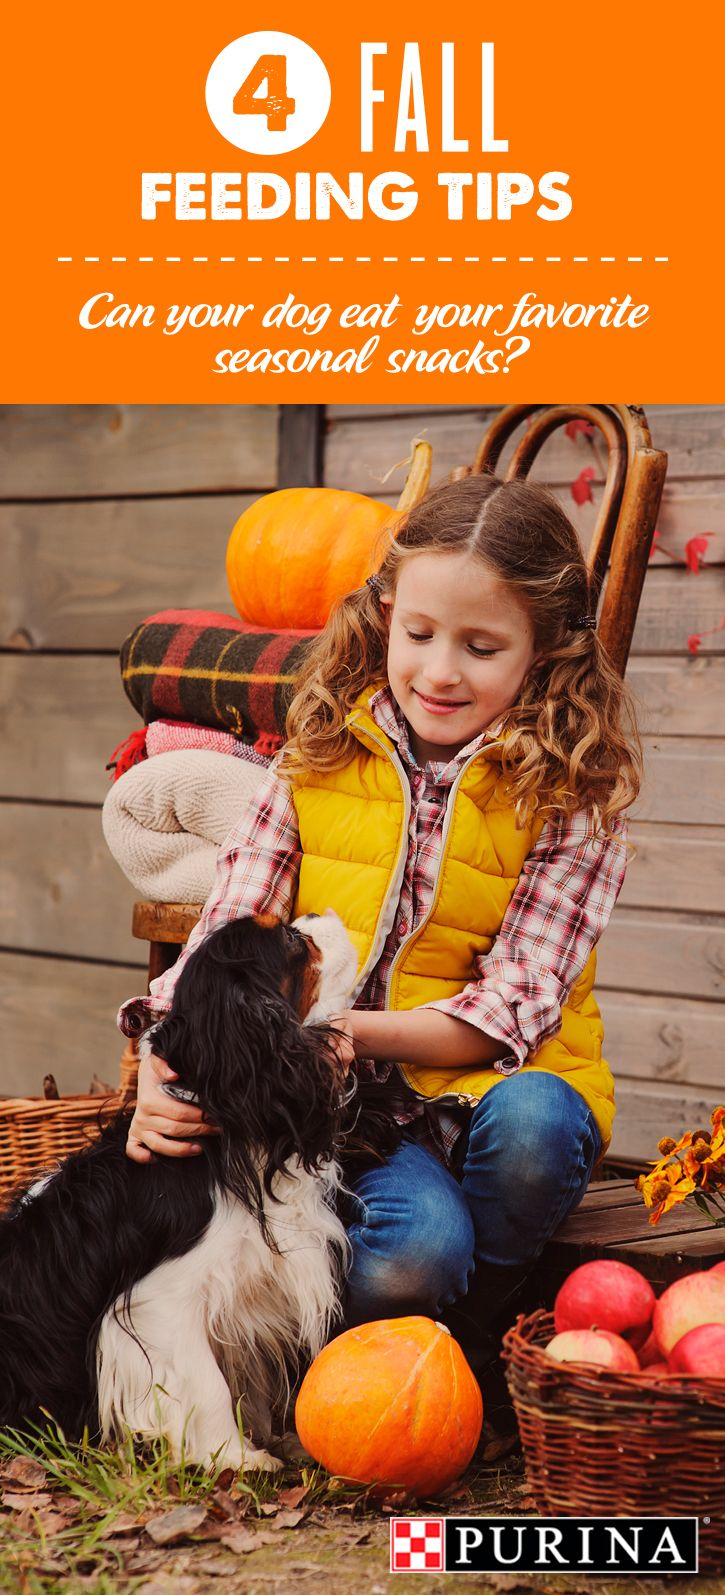 """When you think autumn, which foods come to mind? Pumpkins, sweet potatoes and nuts are key ingredients in some of our favorite holiday meals. But are these foods appropriate for all members of the family – even furry ones? If you're wondering, """"can my dog eat that?"""" read more as Purina Veterinarians reveal little-known facts about these favorite fall foods including pumpkin, sweet potatoes and nuts. See guidelines for feeding some human snacks to your dogs."""